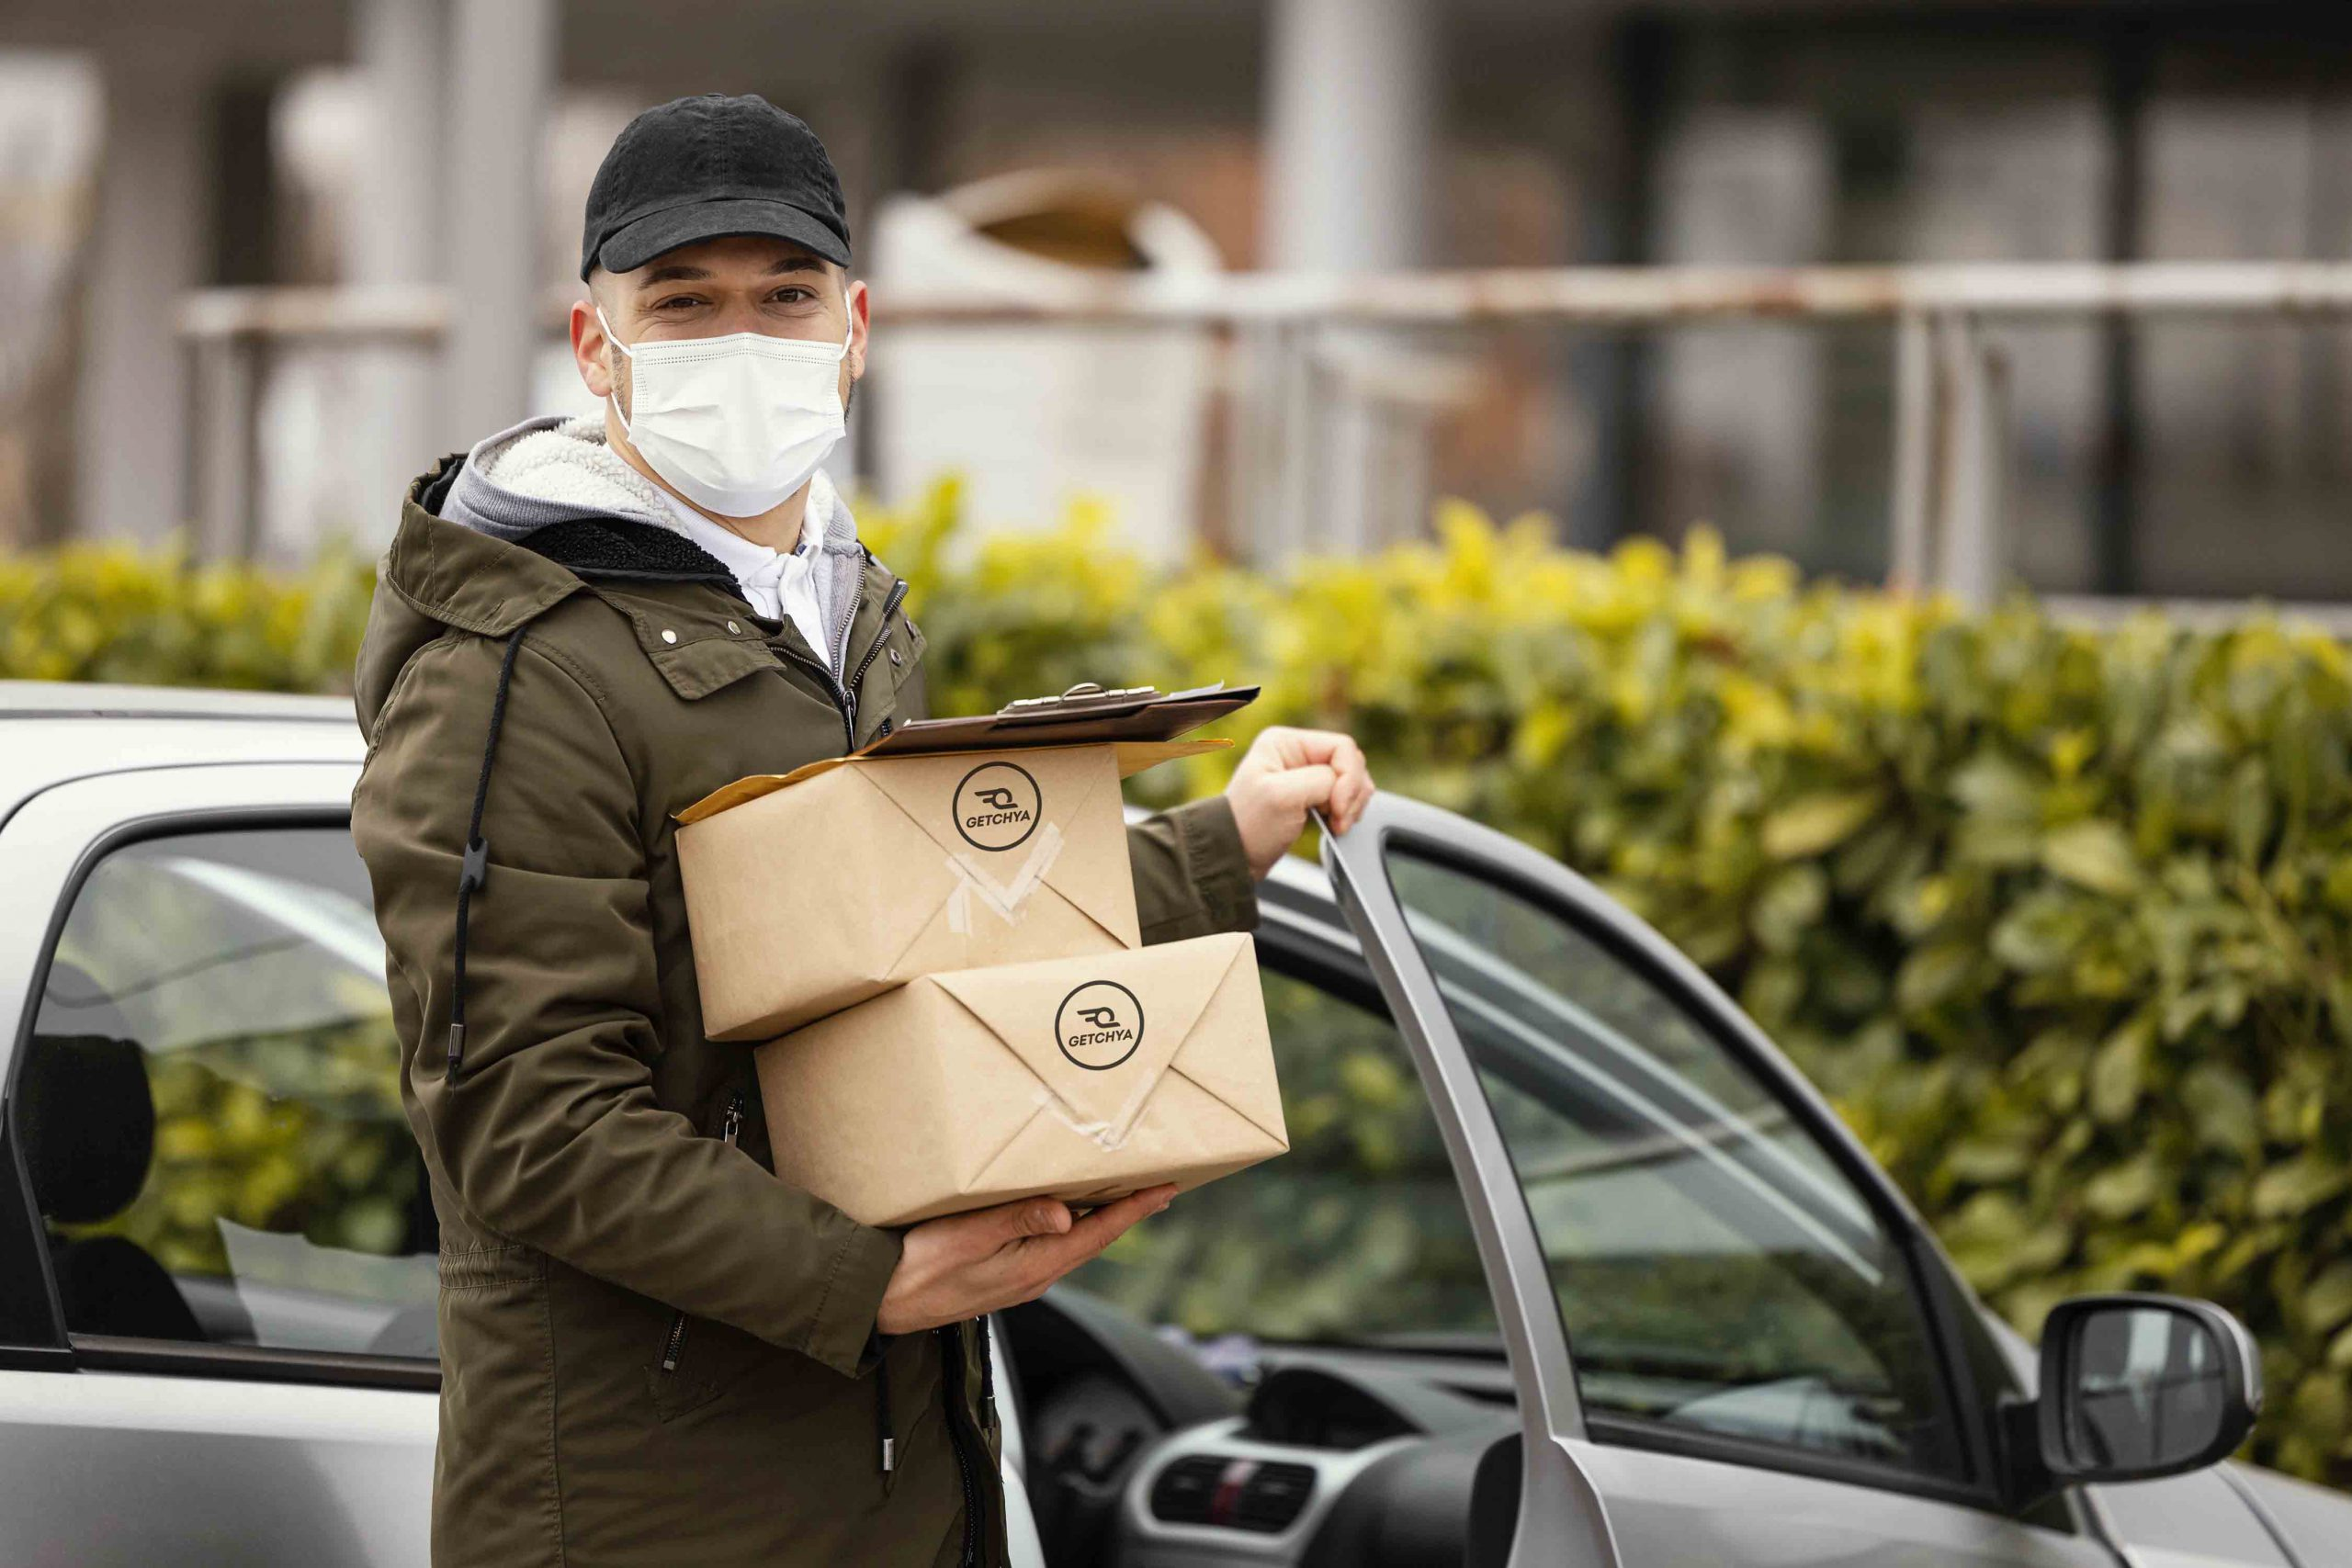 delivery-male-with-mask-packages2